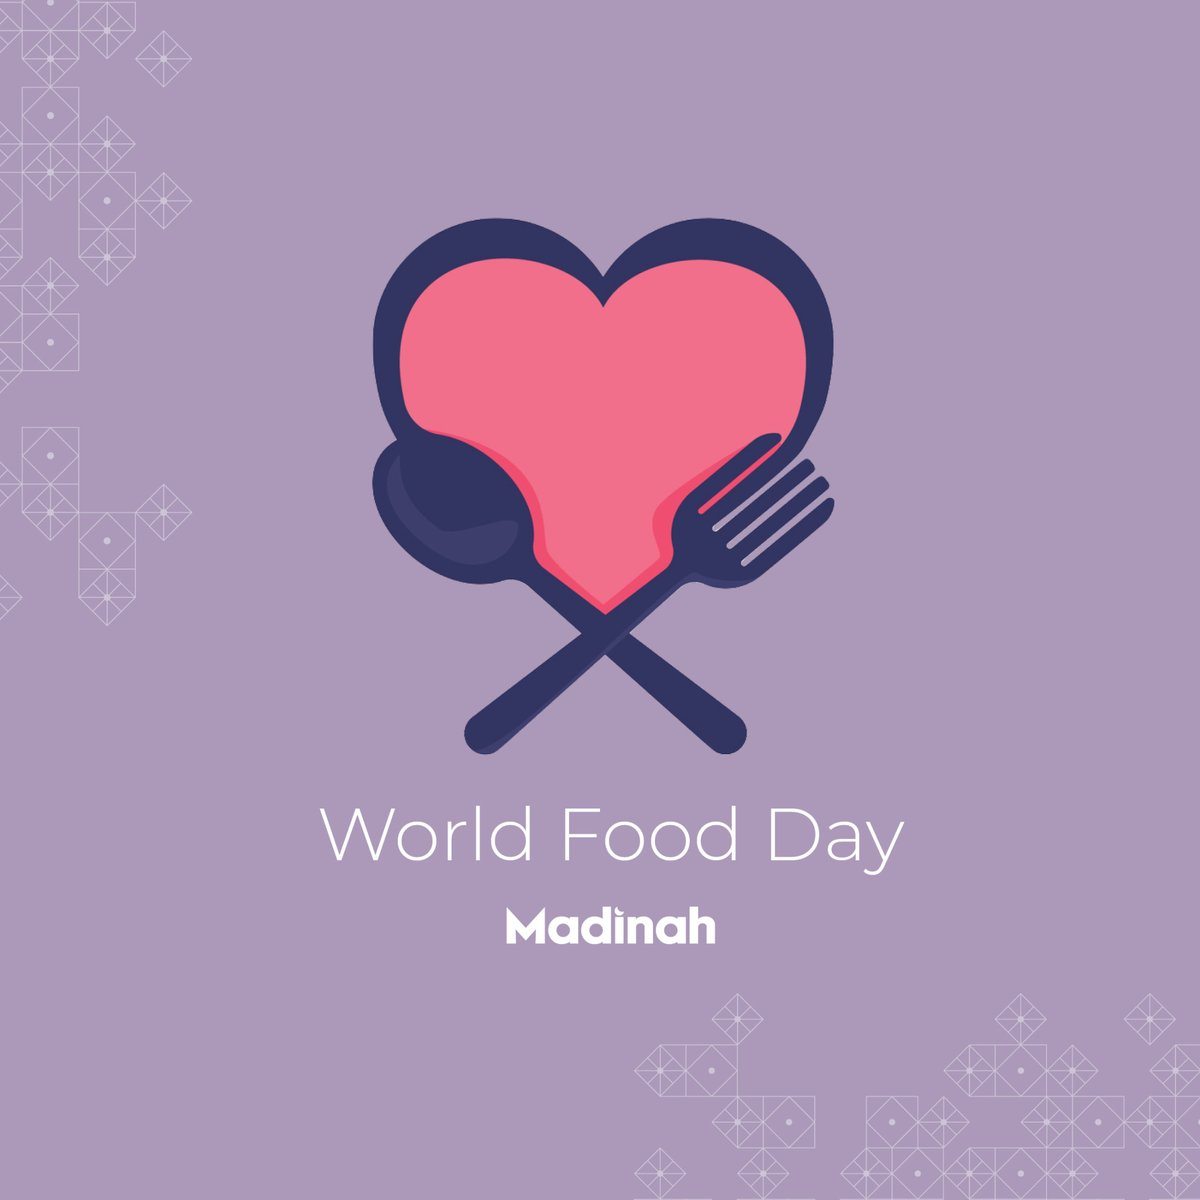 It was World Food Day on Friday. We must look towards the future that we need to build for the better. With our world constantly changing, it's important that we grow, nourish and sustain - together.  -- #madinah #charity #worldfoodday #foodday #world https://t.co/4e7gudYsL5